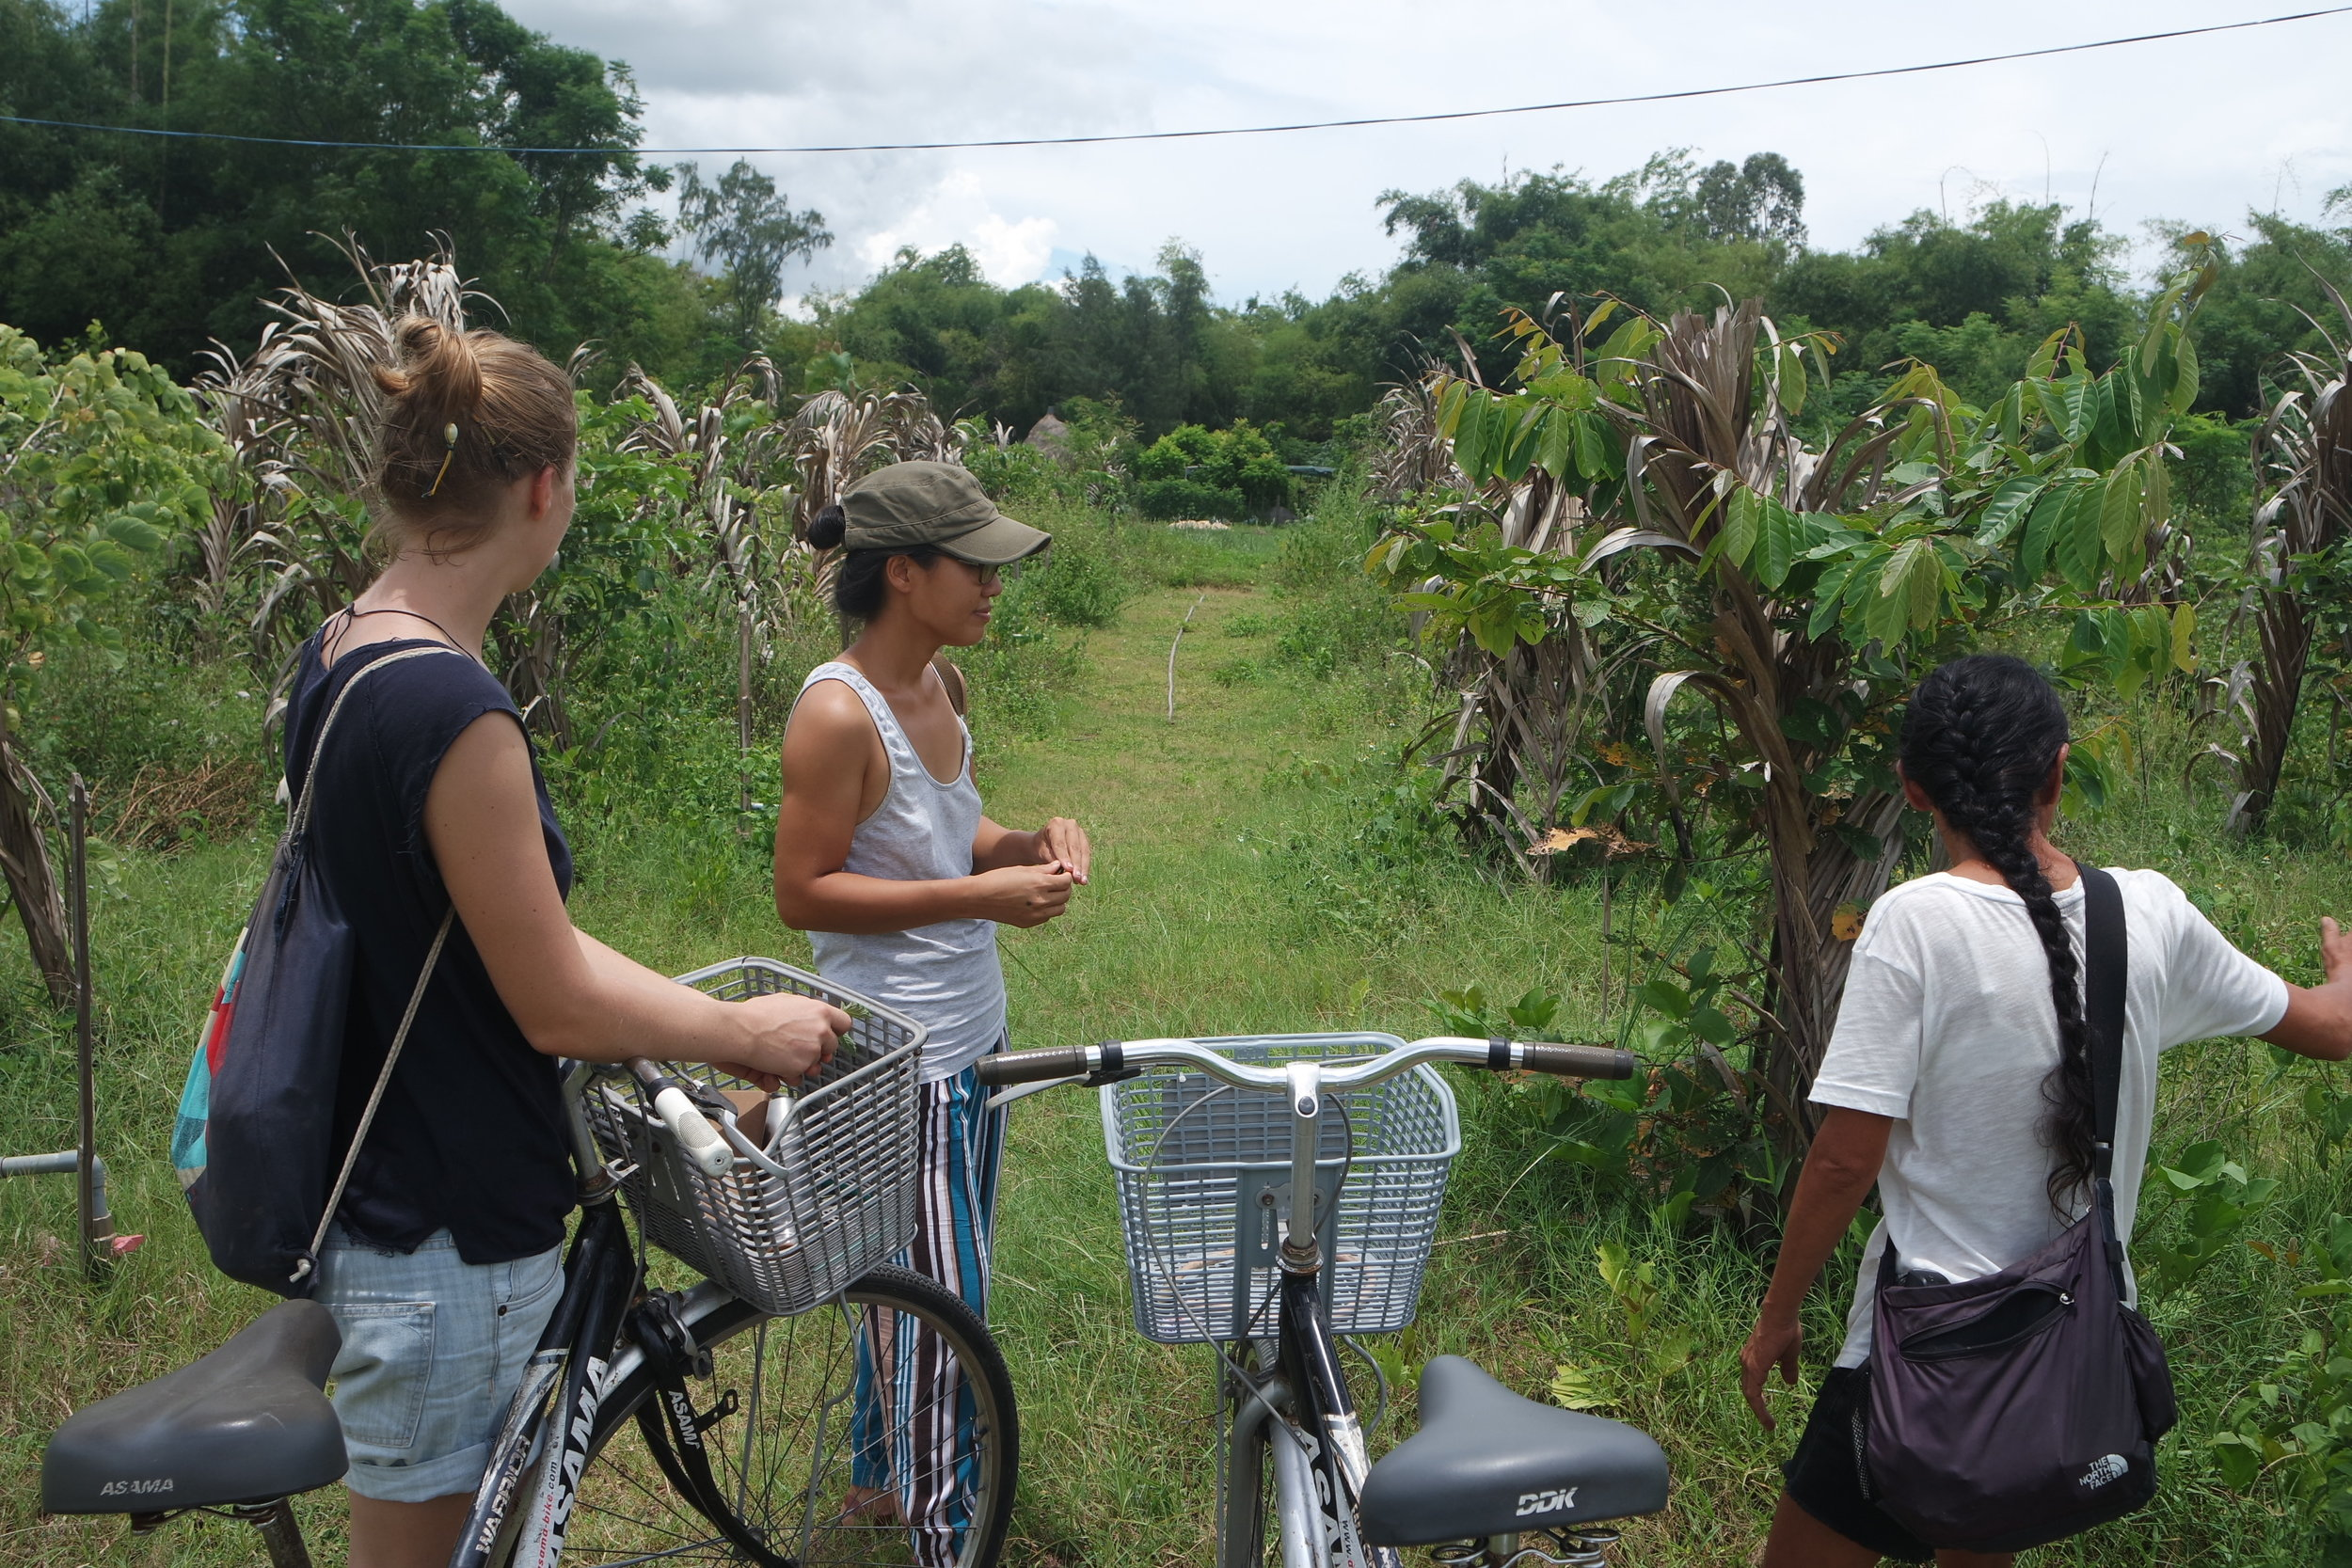 Triem Tay village and An Nhien farm are just a short bike ride away from Hoi An.